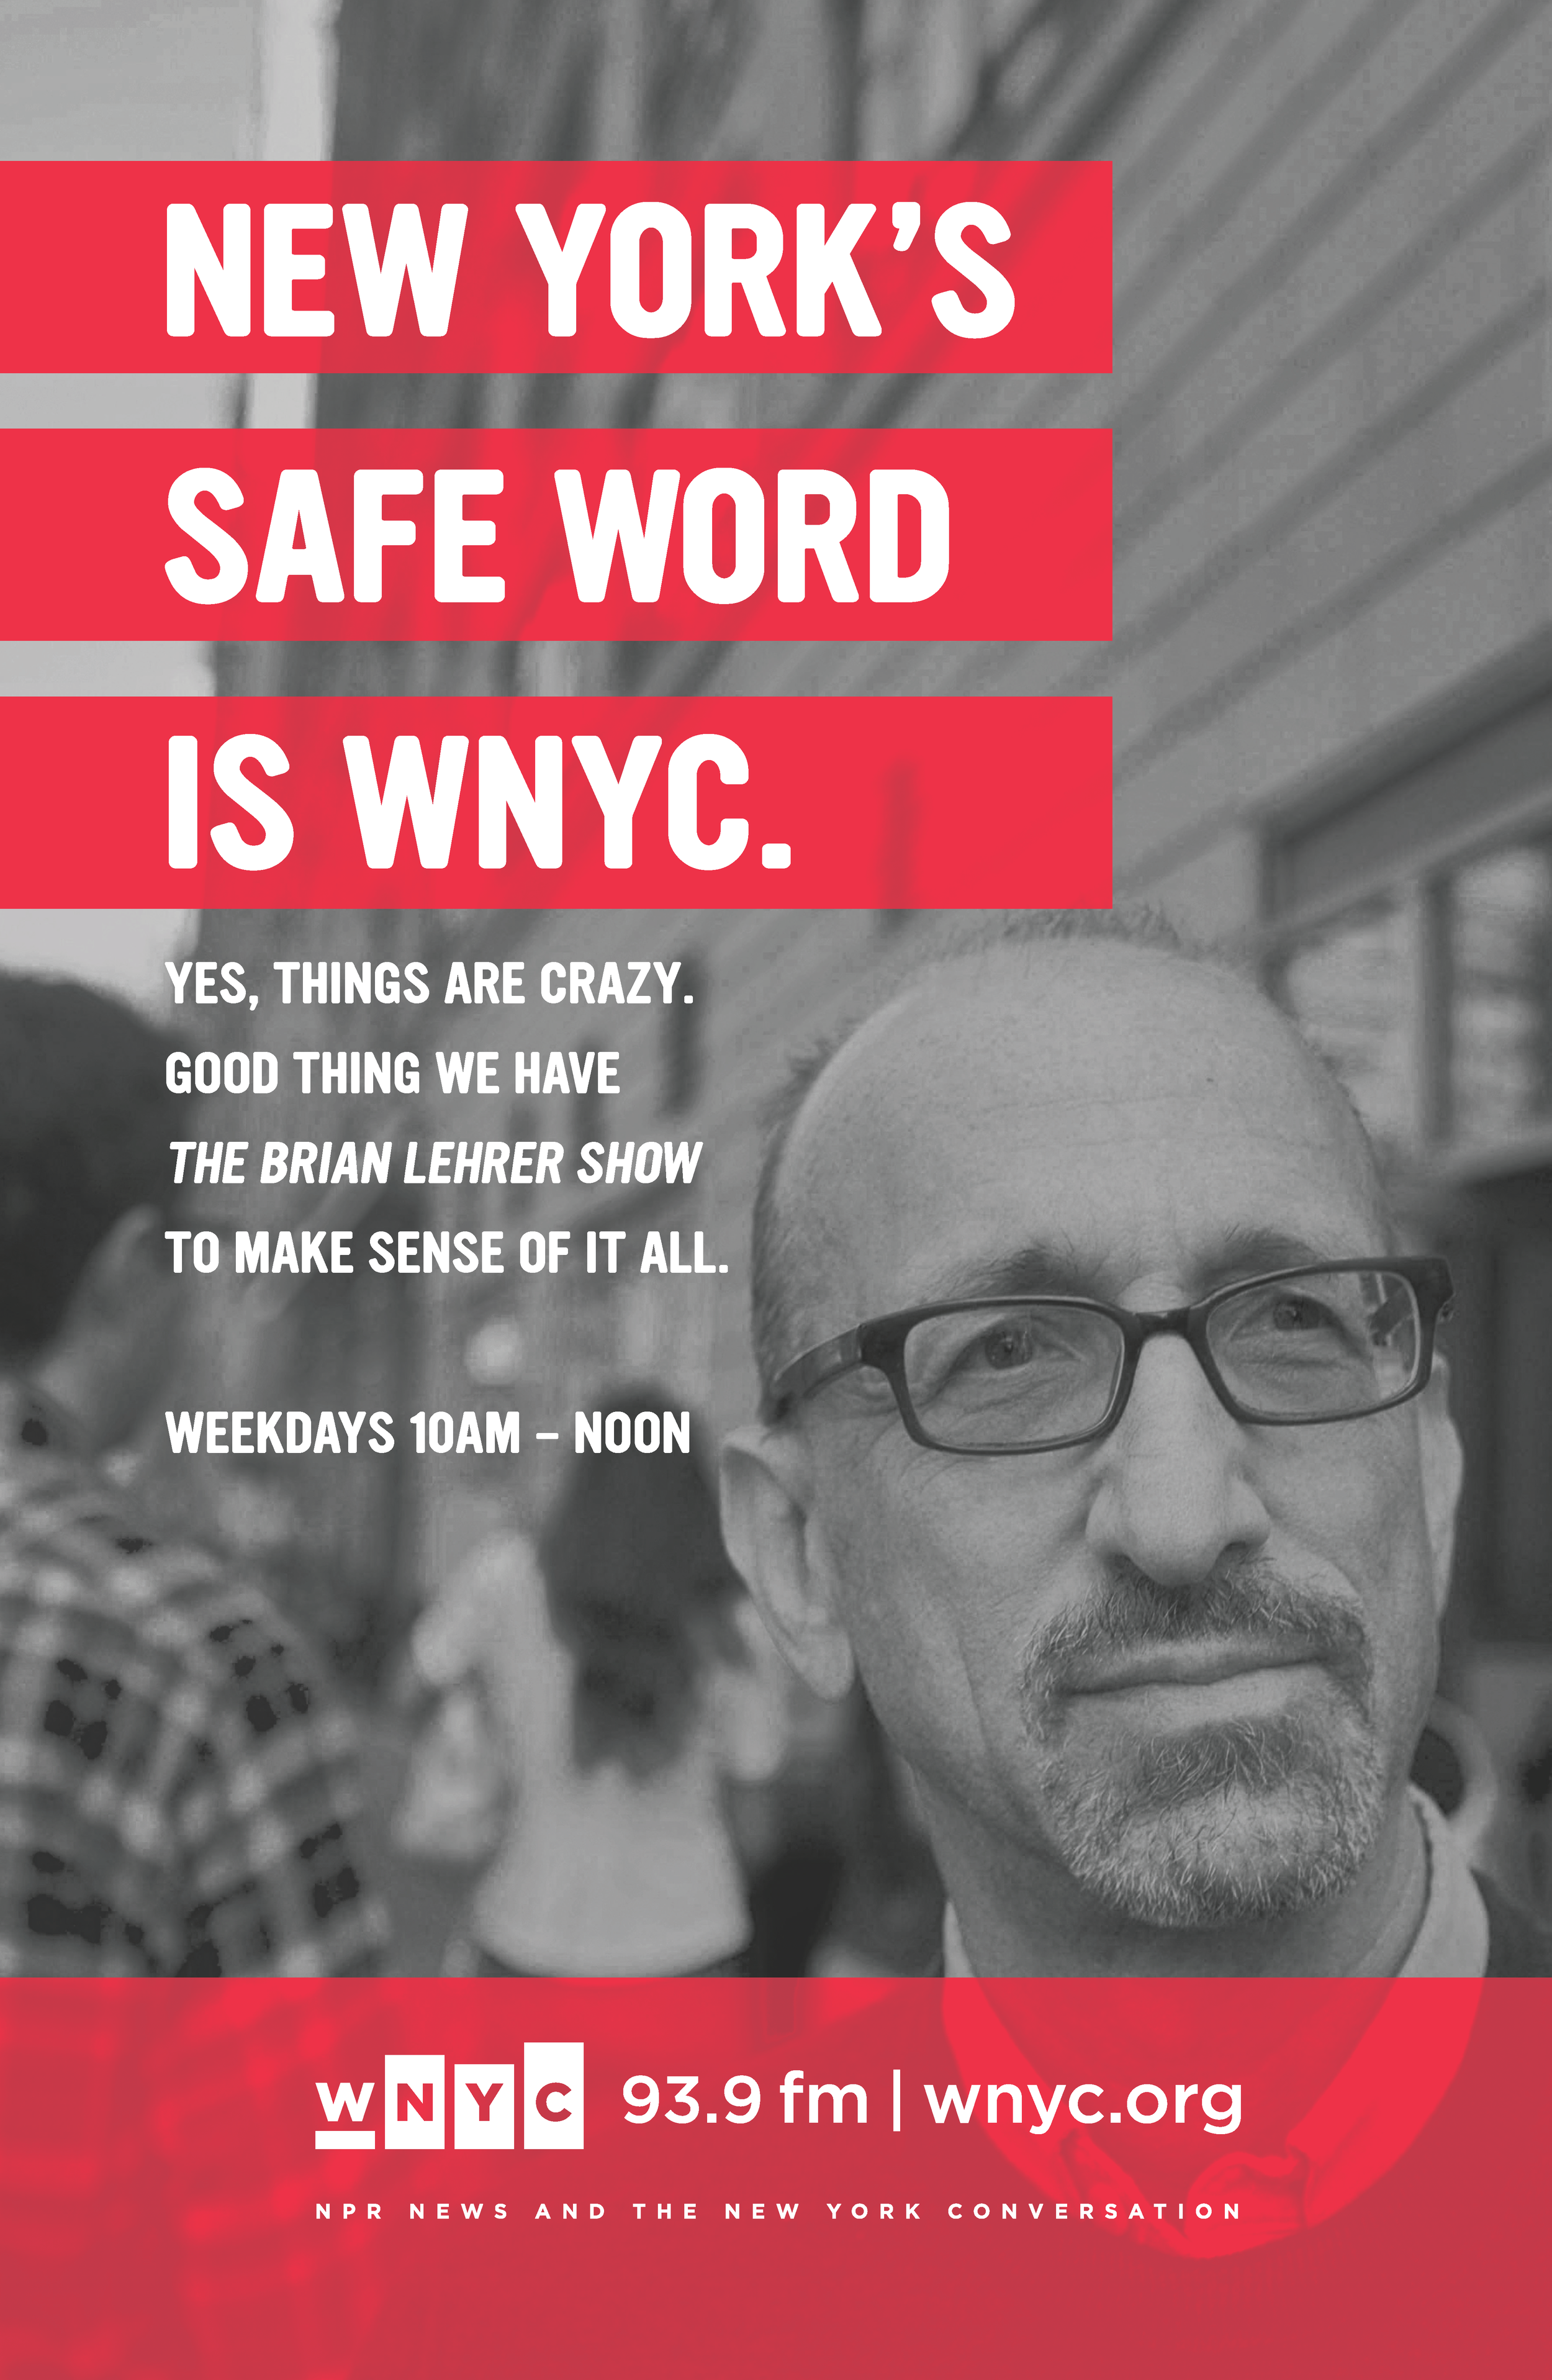 WNYC02SAFE_NYR_1S_46x30.png